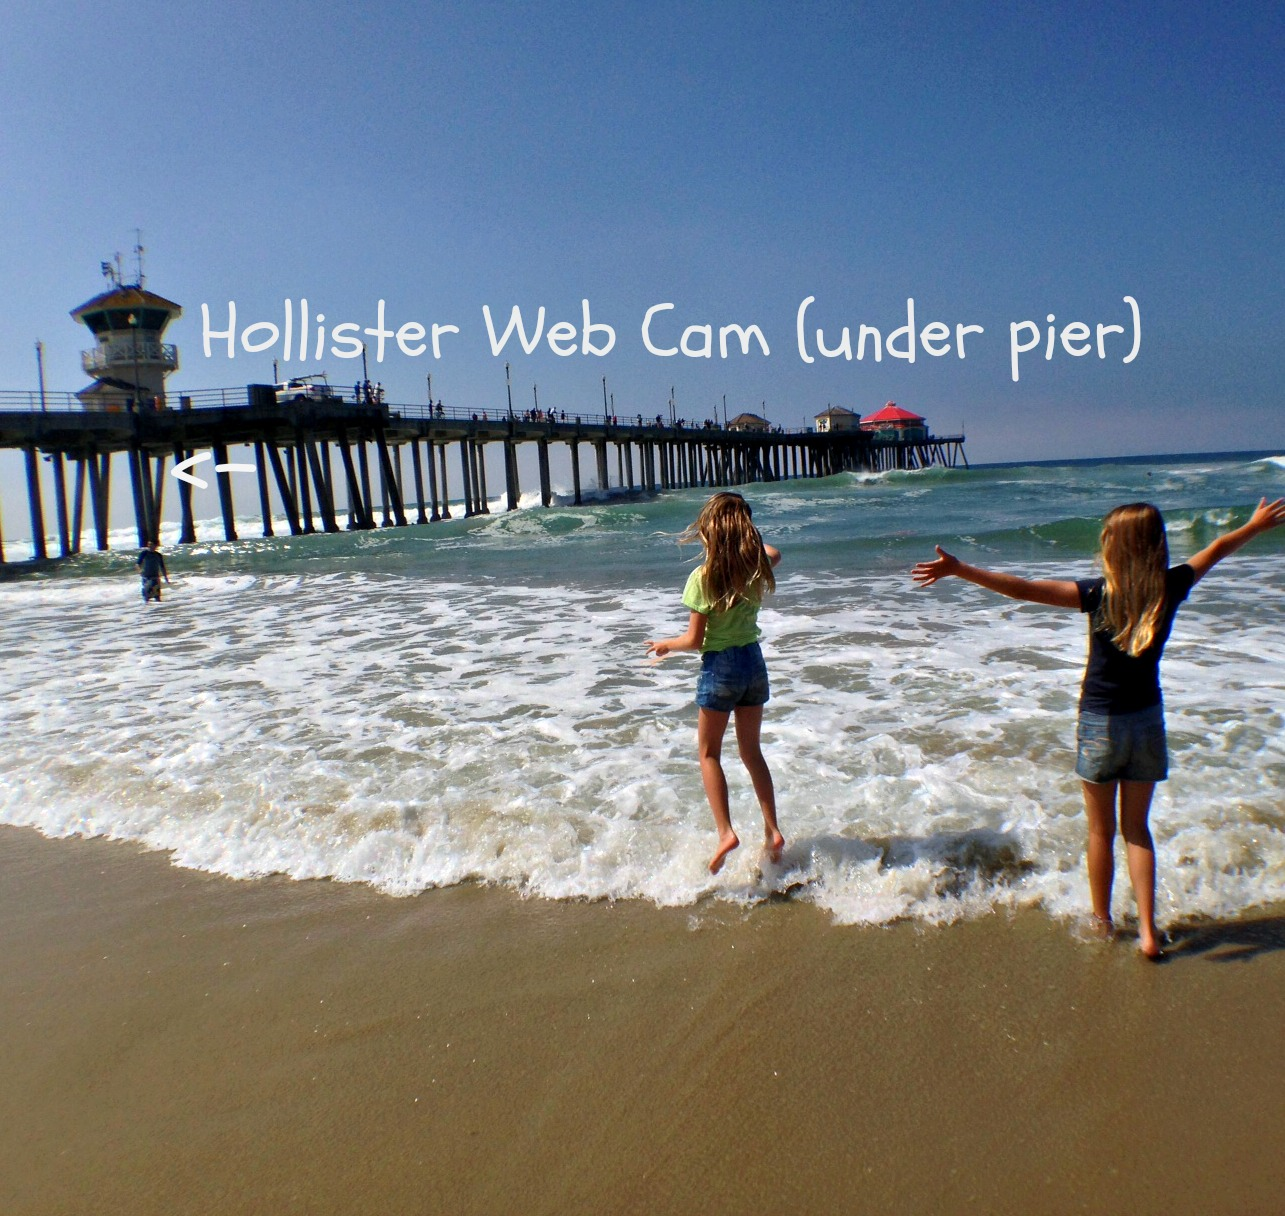 Surf City USA: Finding the Hollister web cam and learning to surf ...